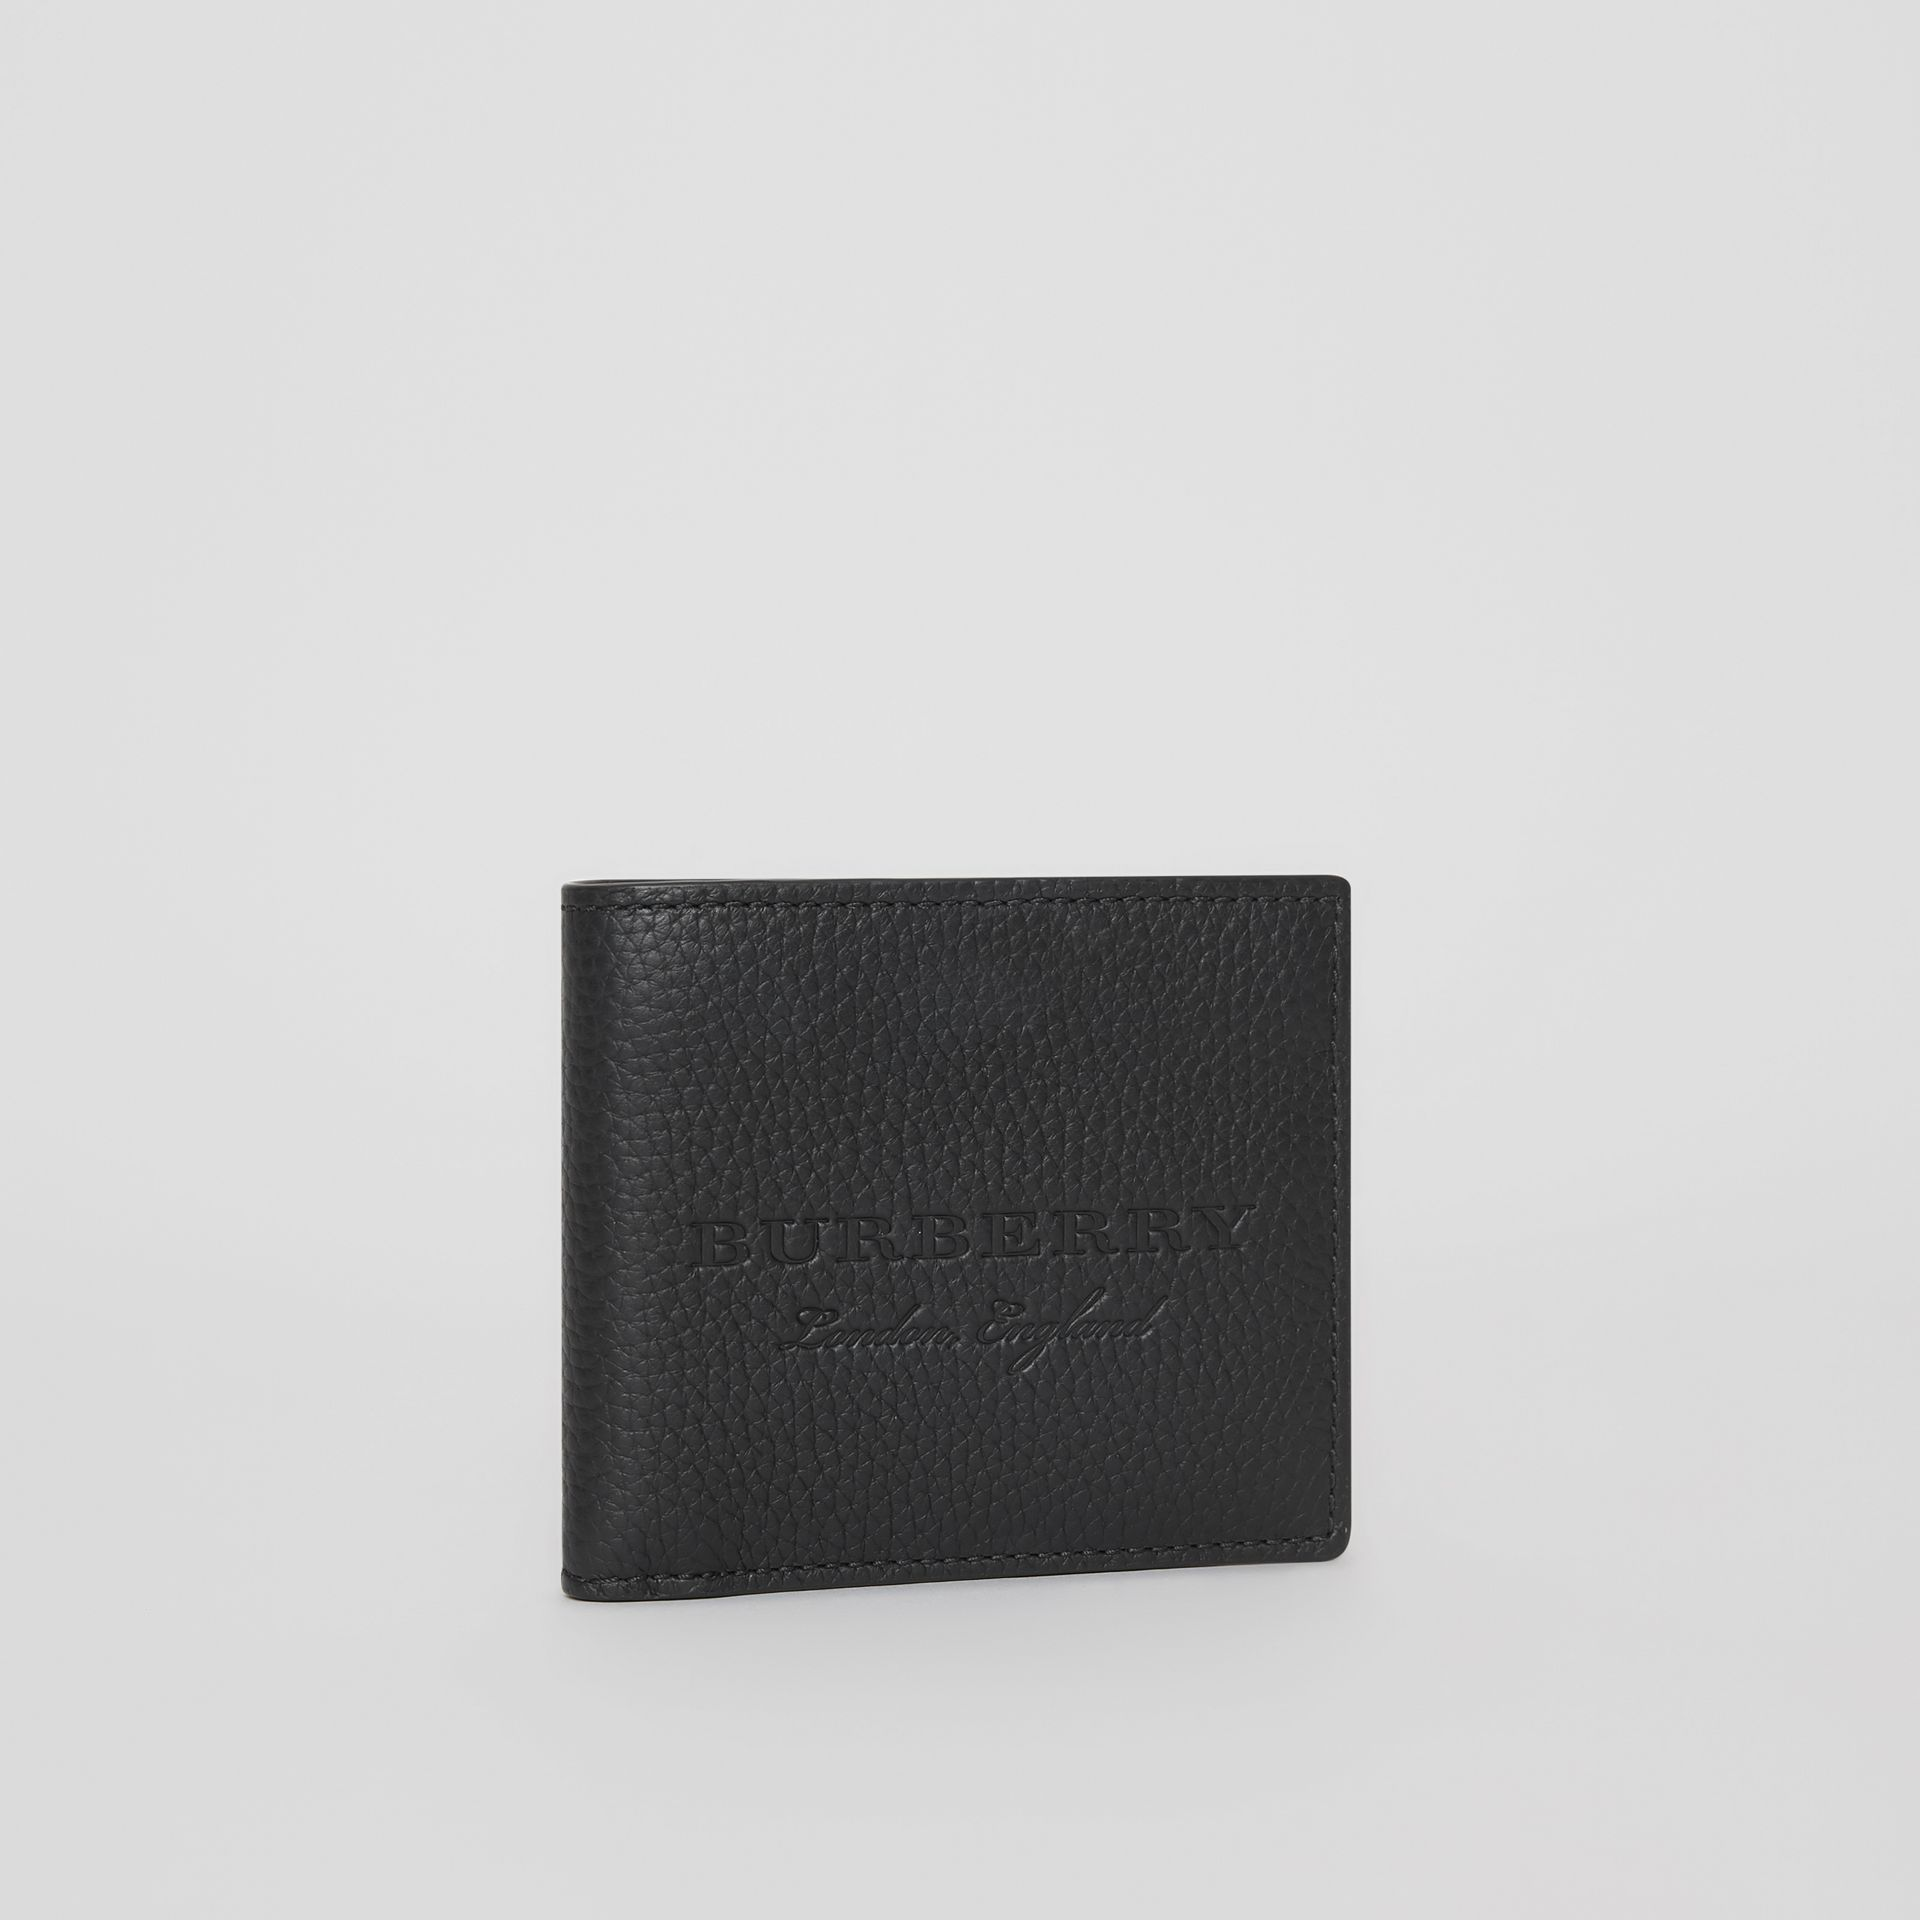 Embossed Leather Bifold Wallet in Black - Men | Burberry Australia - gallery image 4